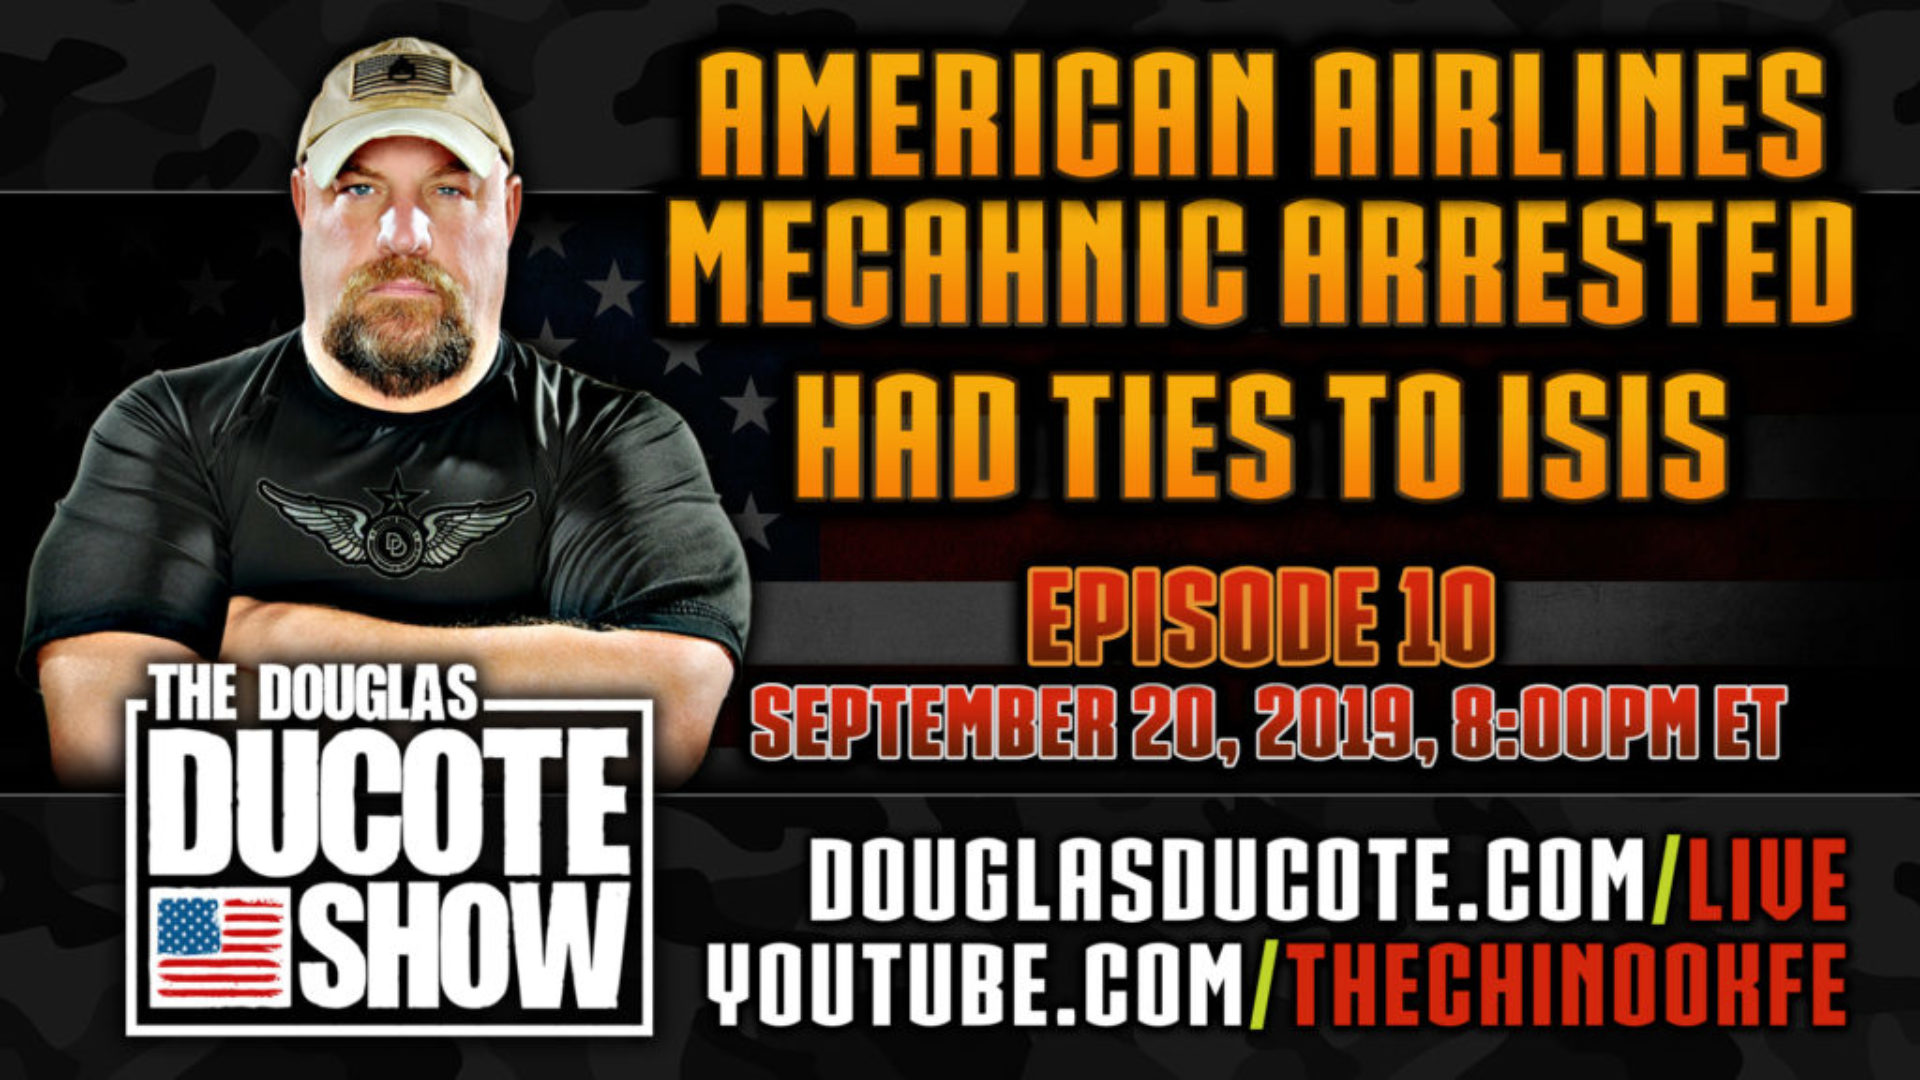 The-Douglas-Ducote-Show-Episode-10